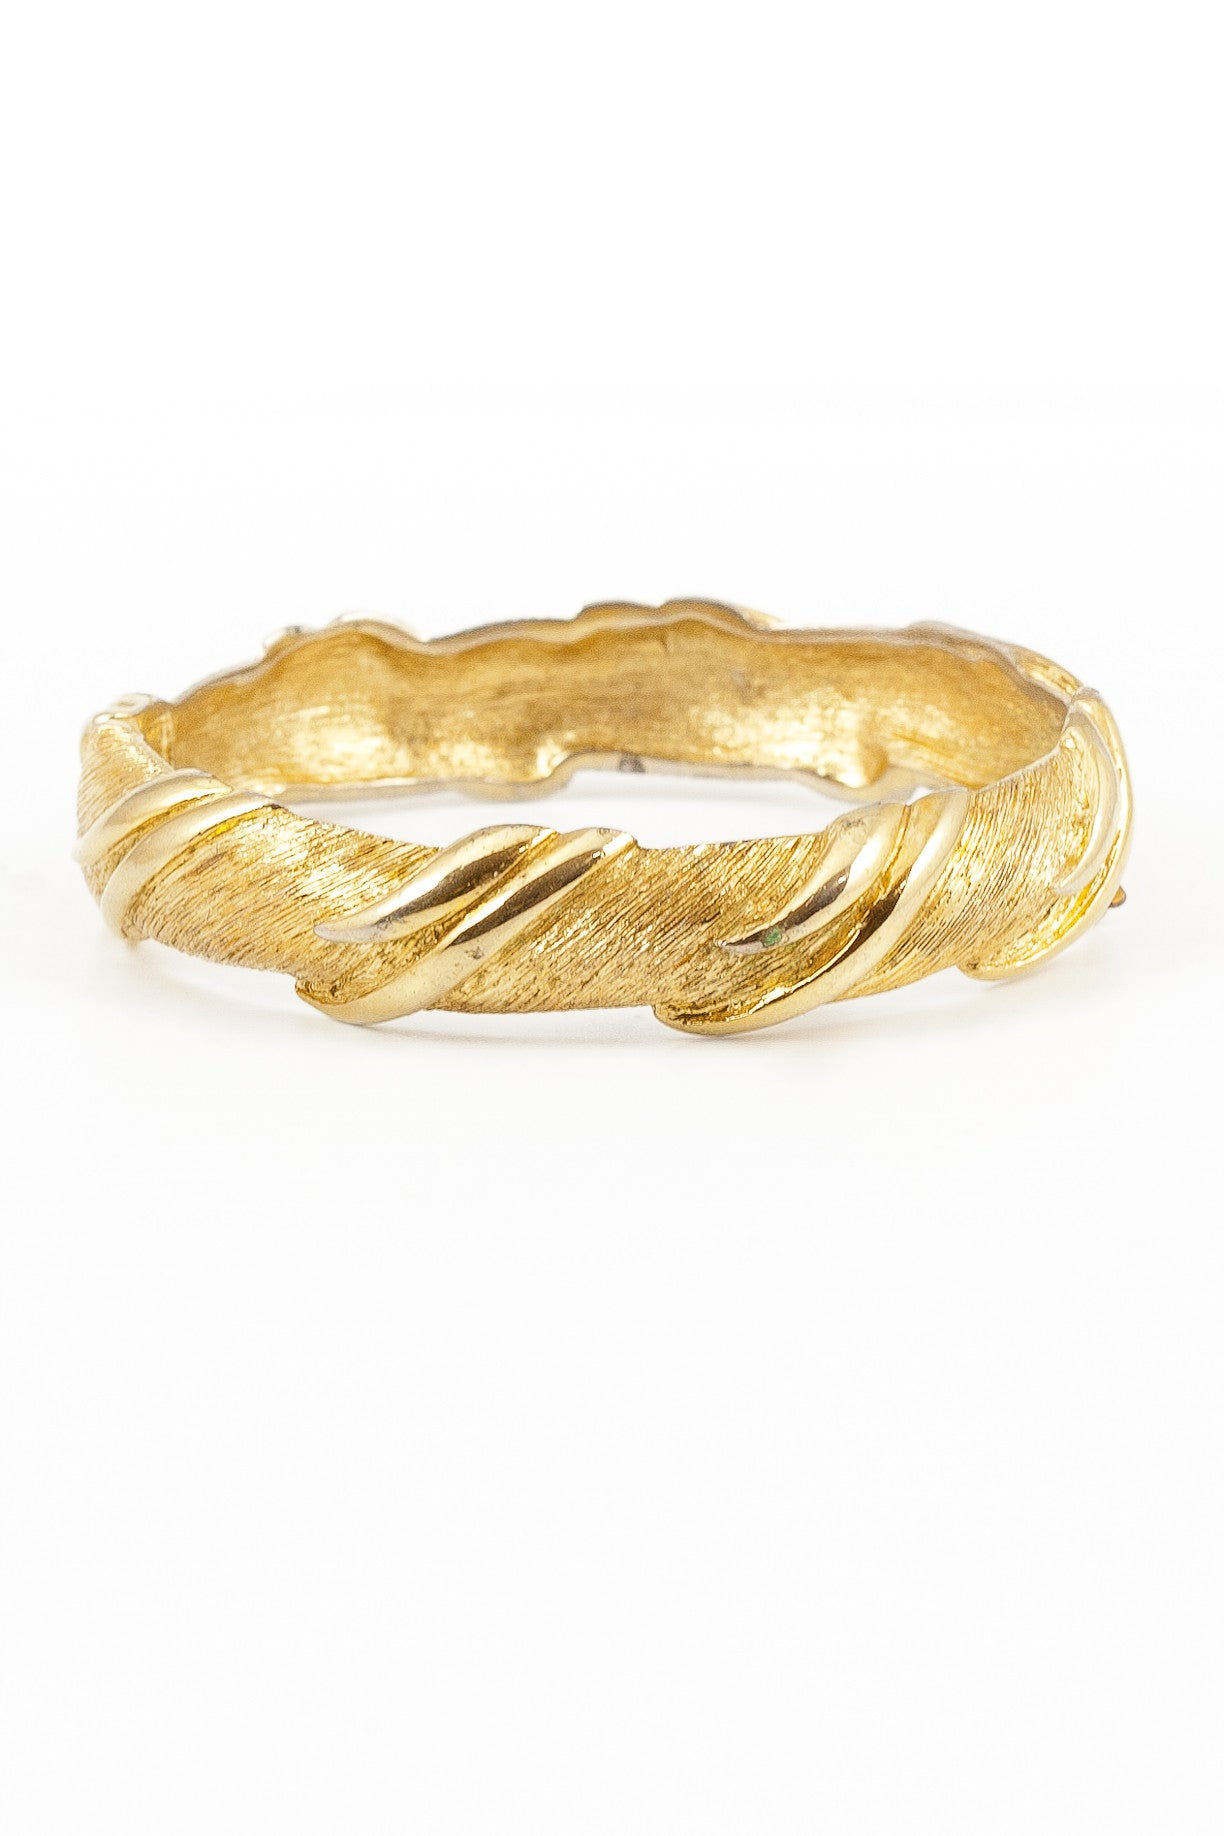 60's__Monet__Etched Flair Bangle